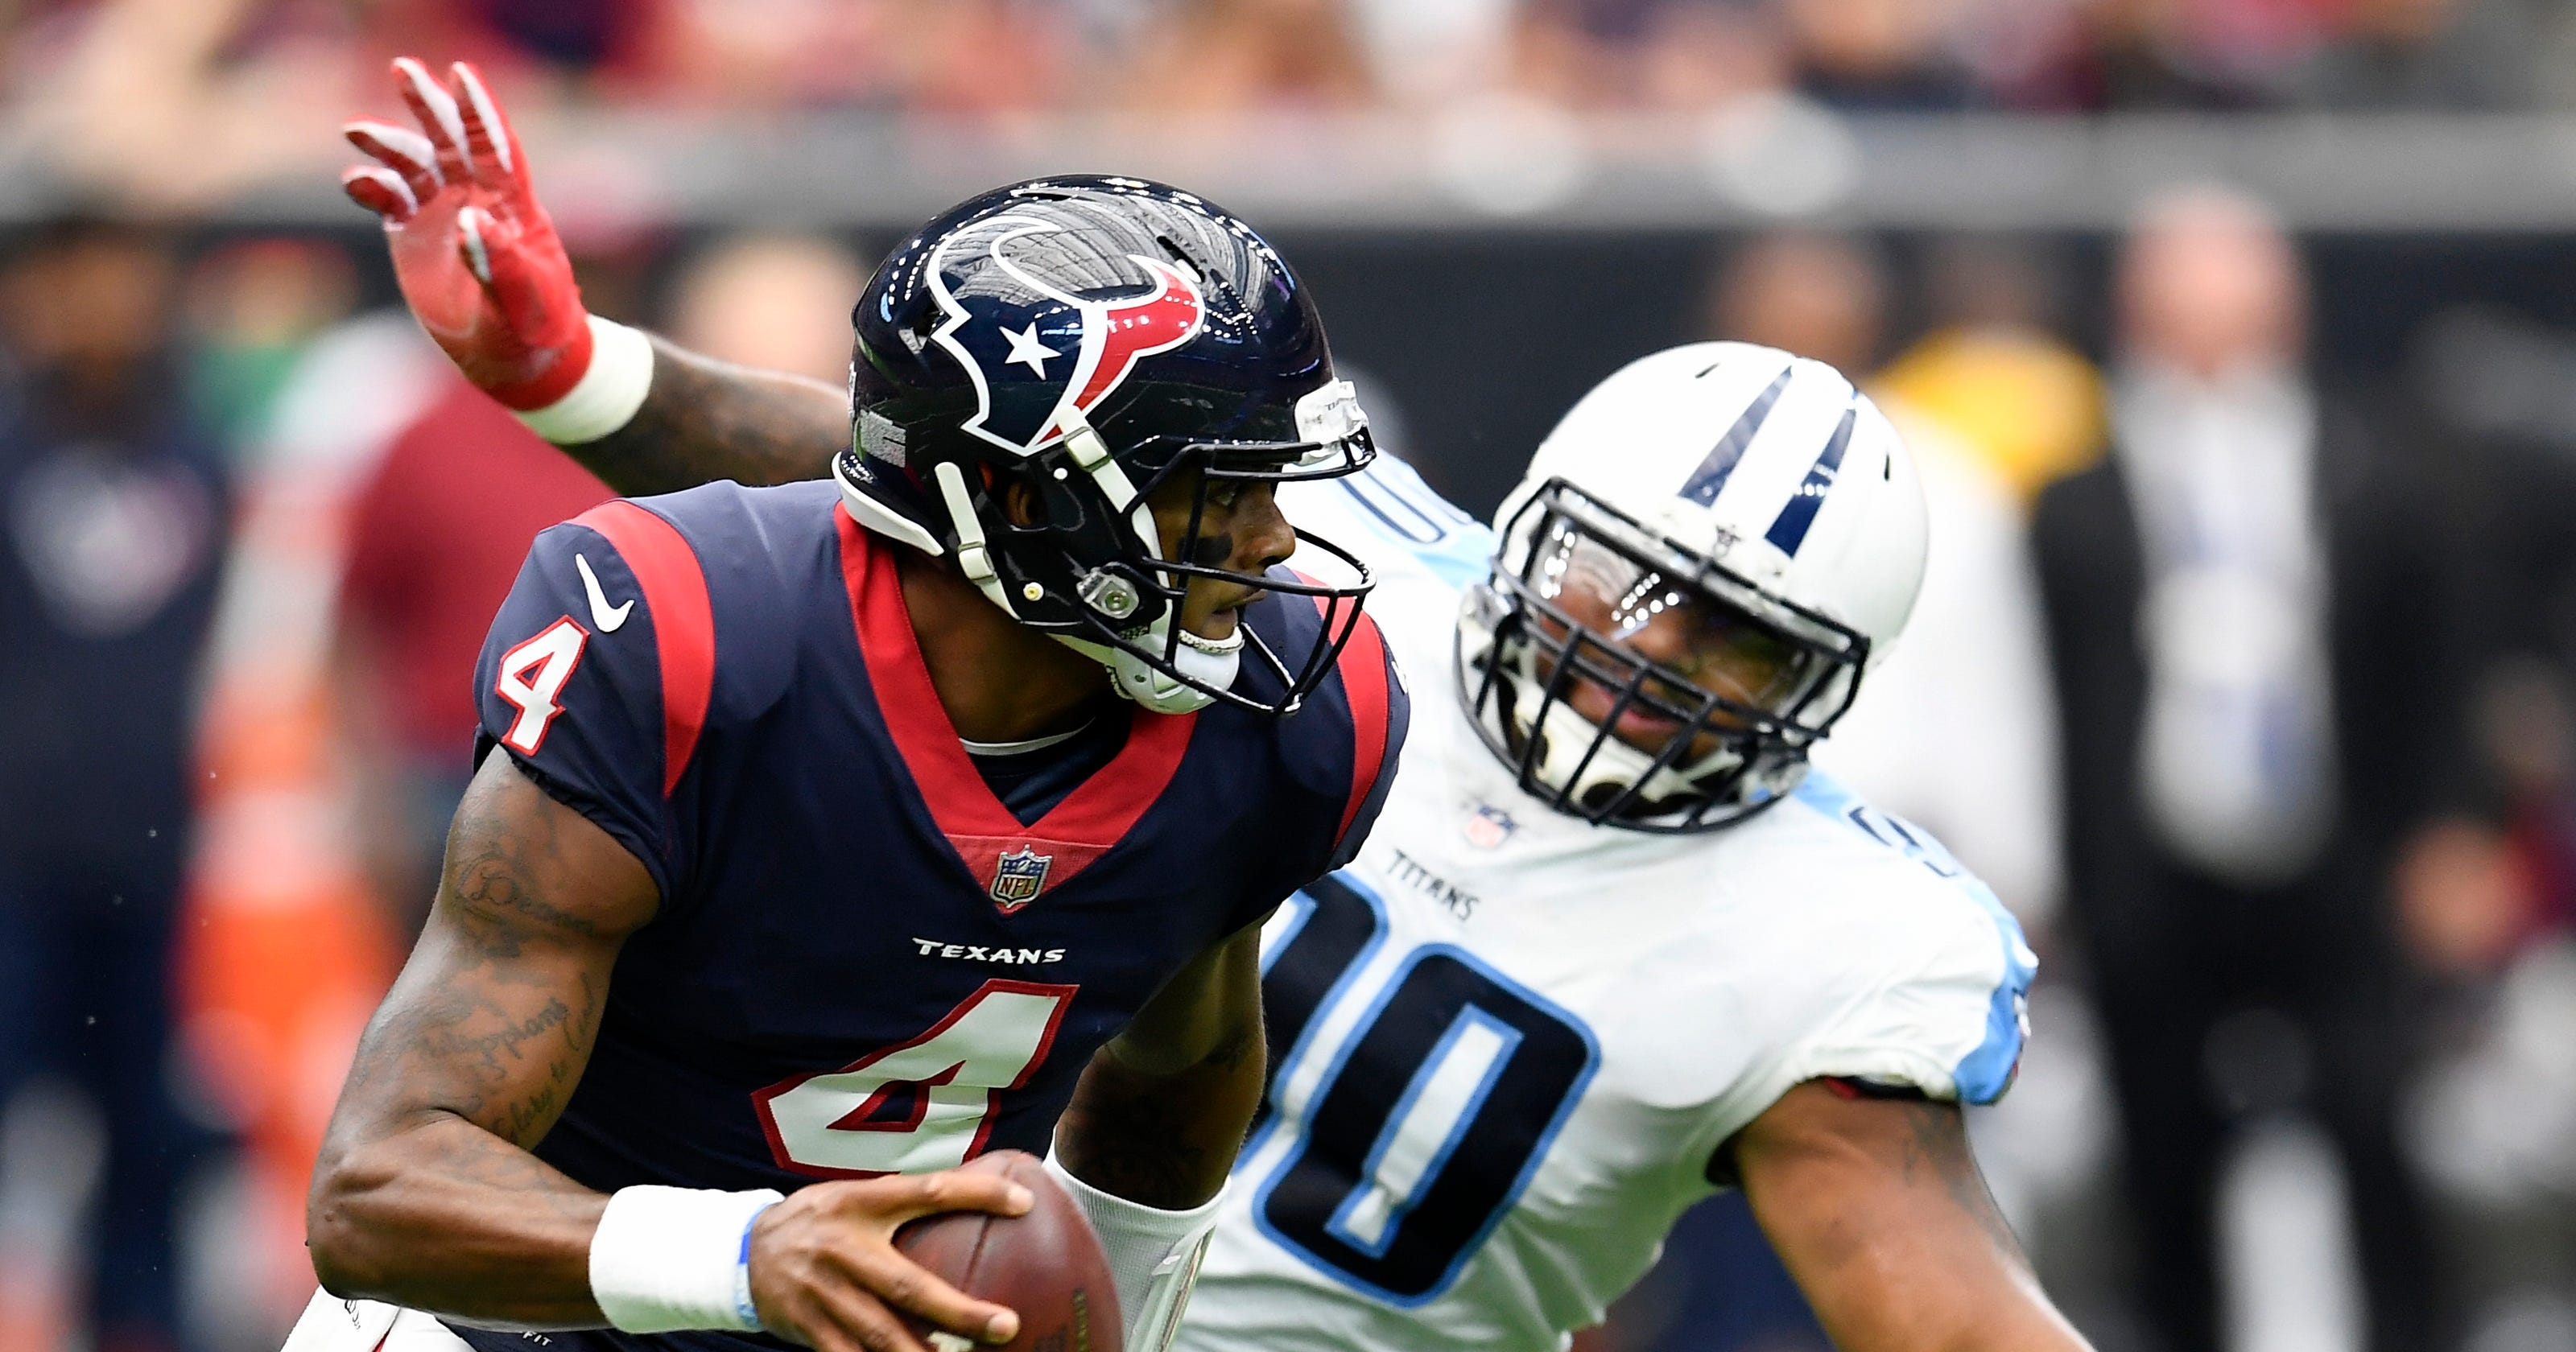 647a6a064 Titans  Texans rookie Deshaun Watson might just take over the AFC South